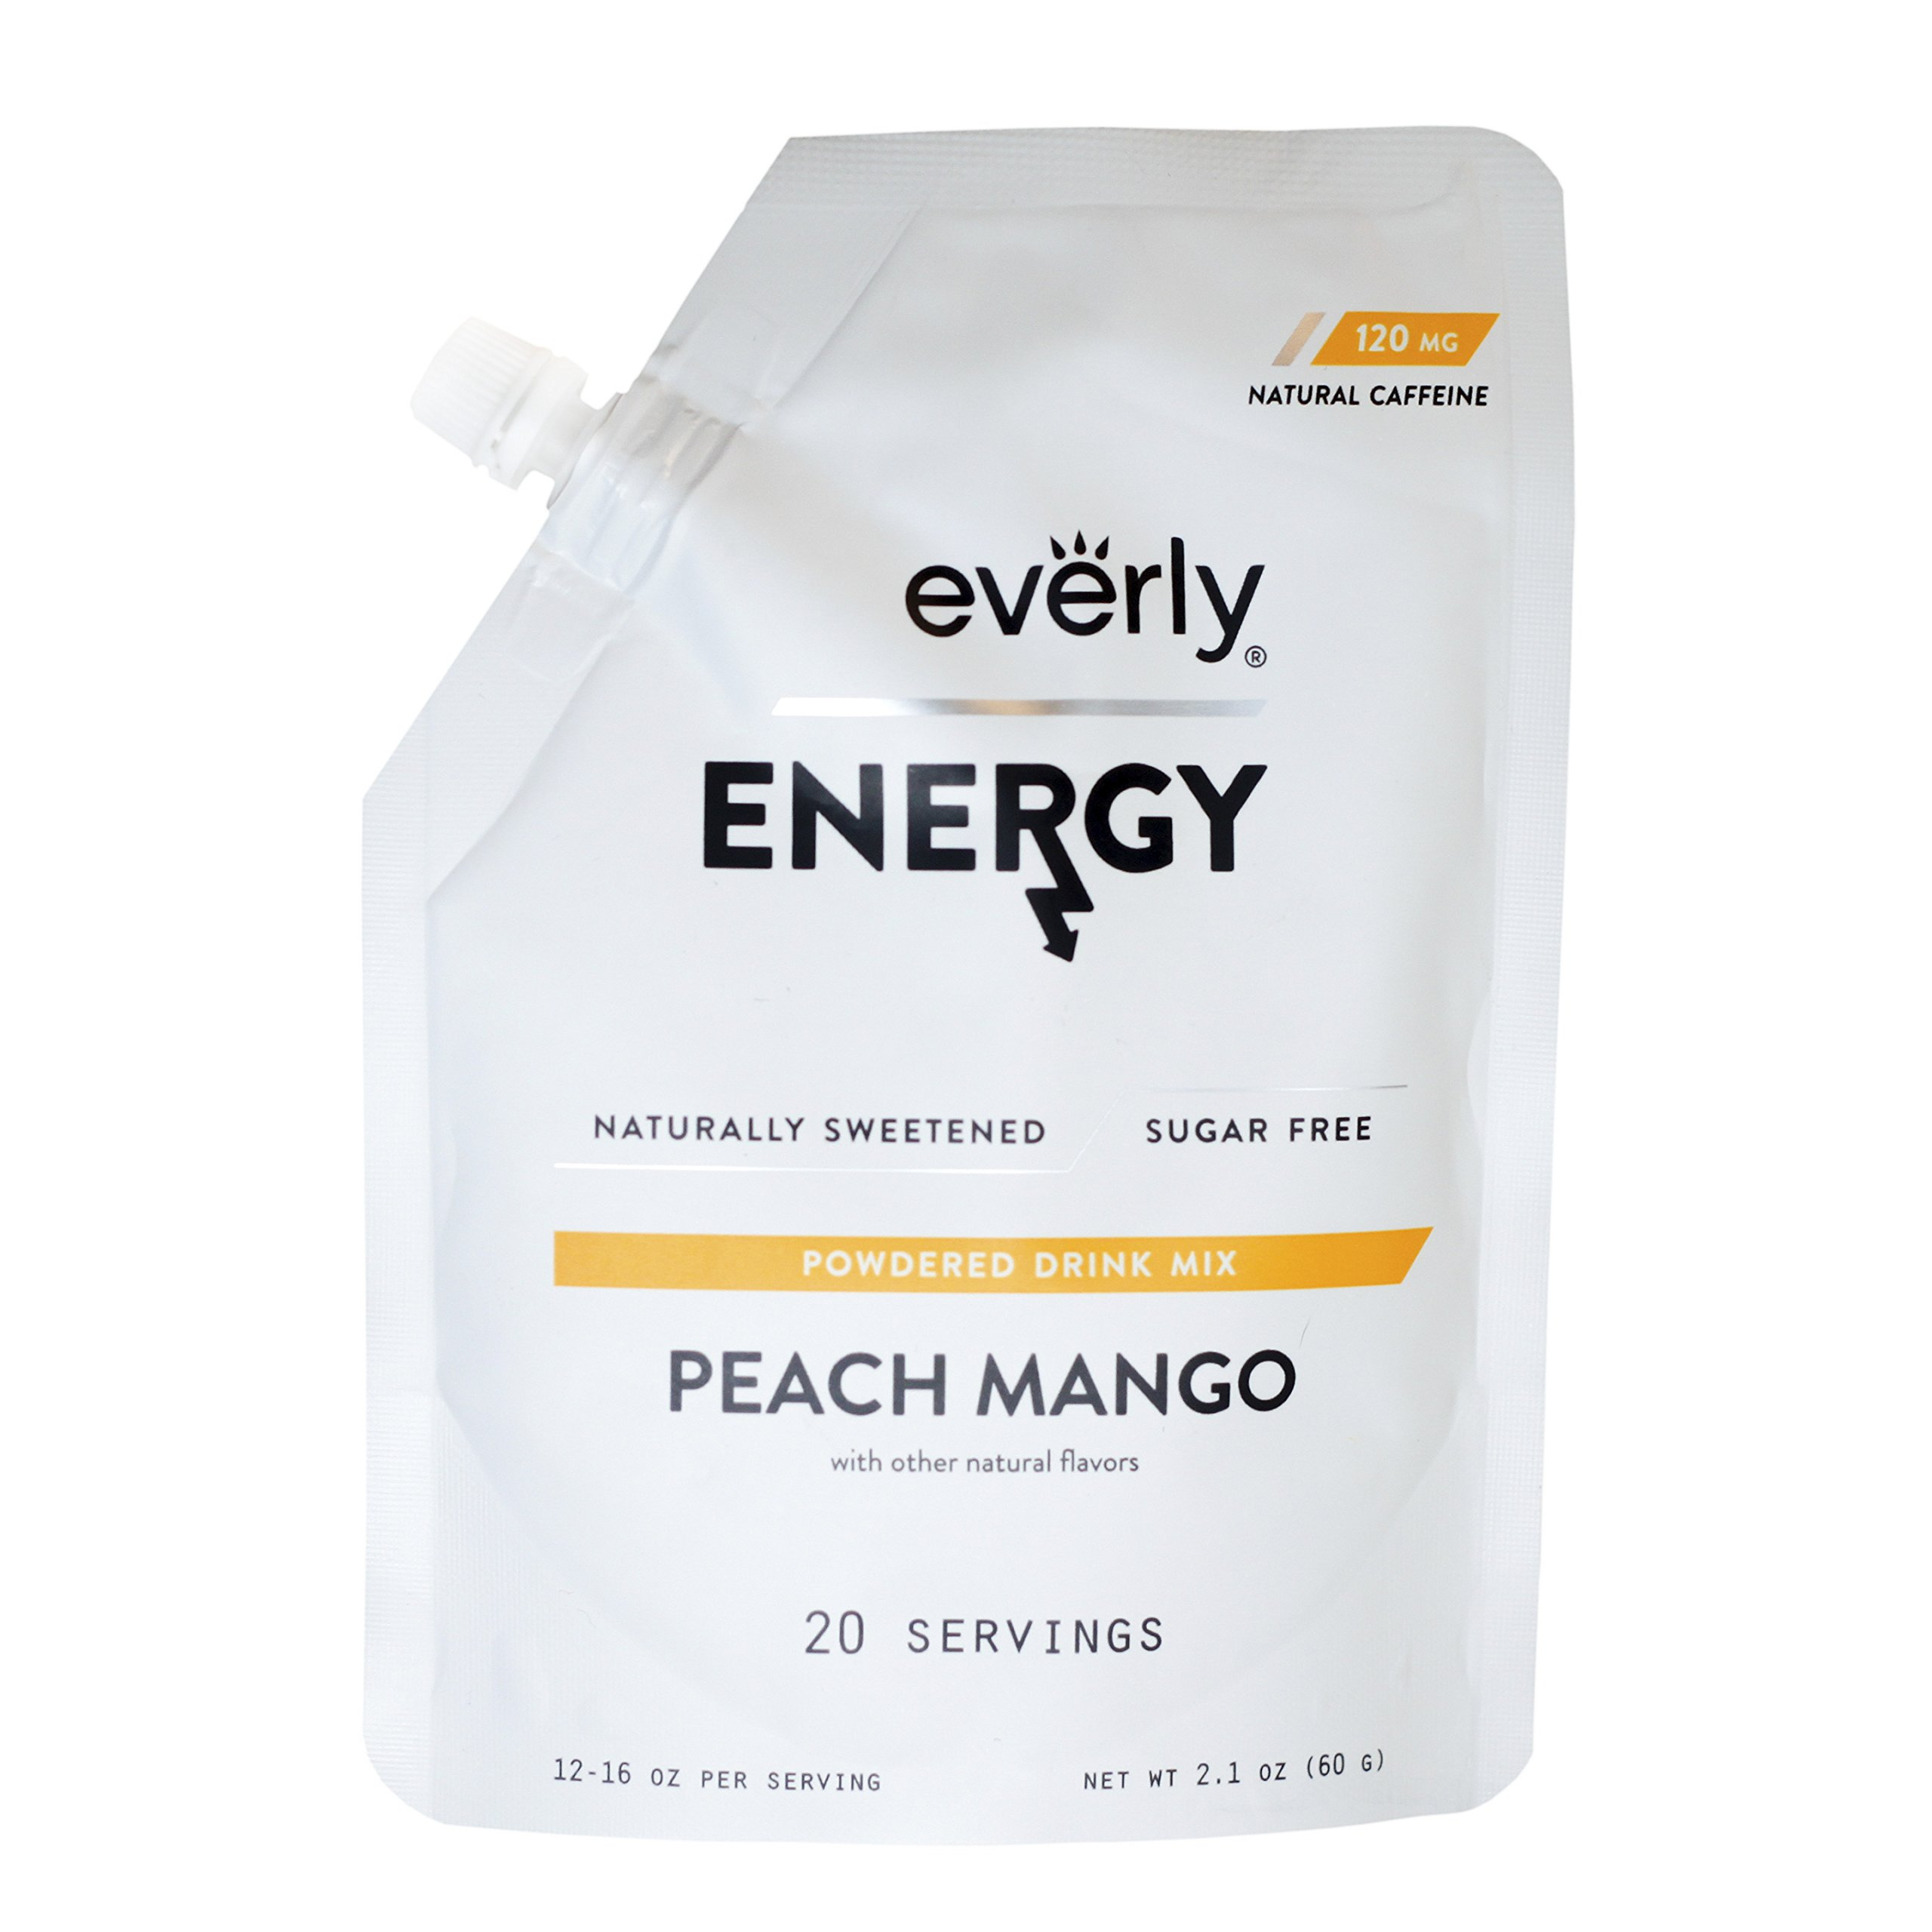 Everly Energy - Affordable, Sugar-free, Natural Energy Drink Mix Powder, Water Flavoring and Water Enhancer - Pouch, 20 Servings, Peach Mango